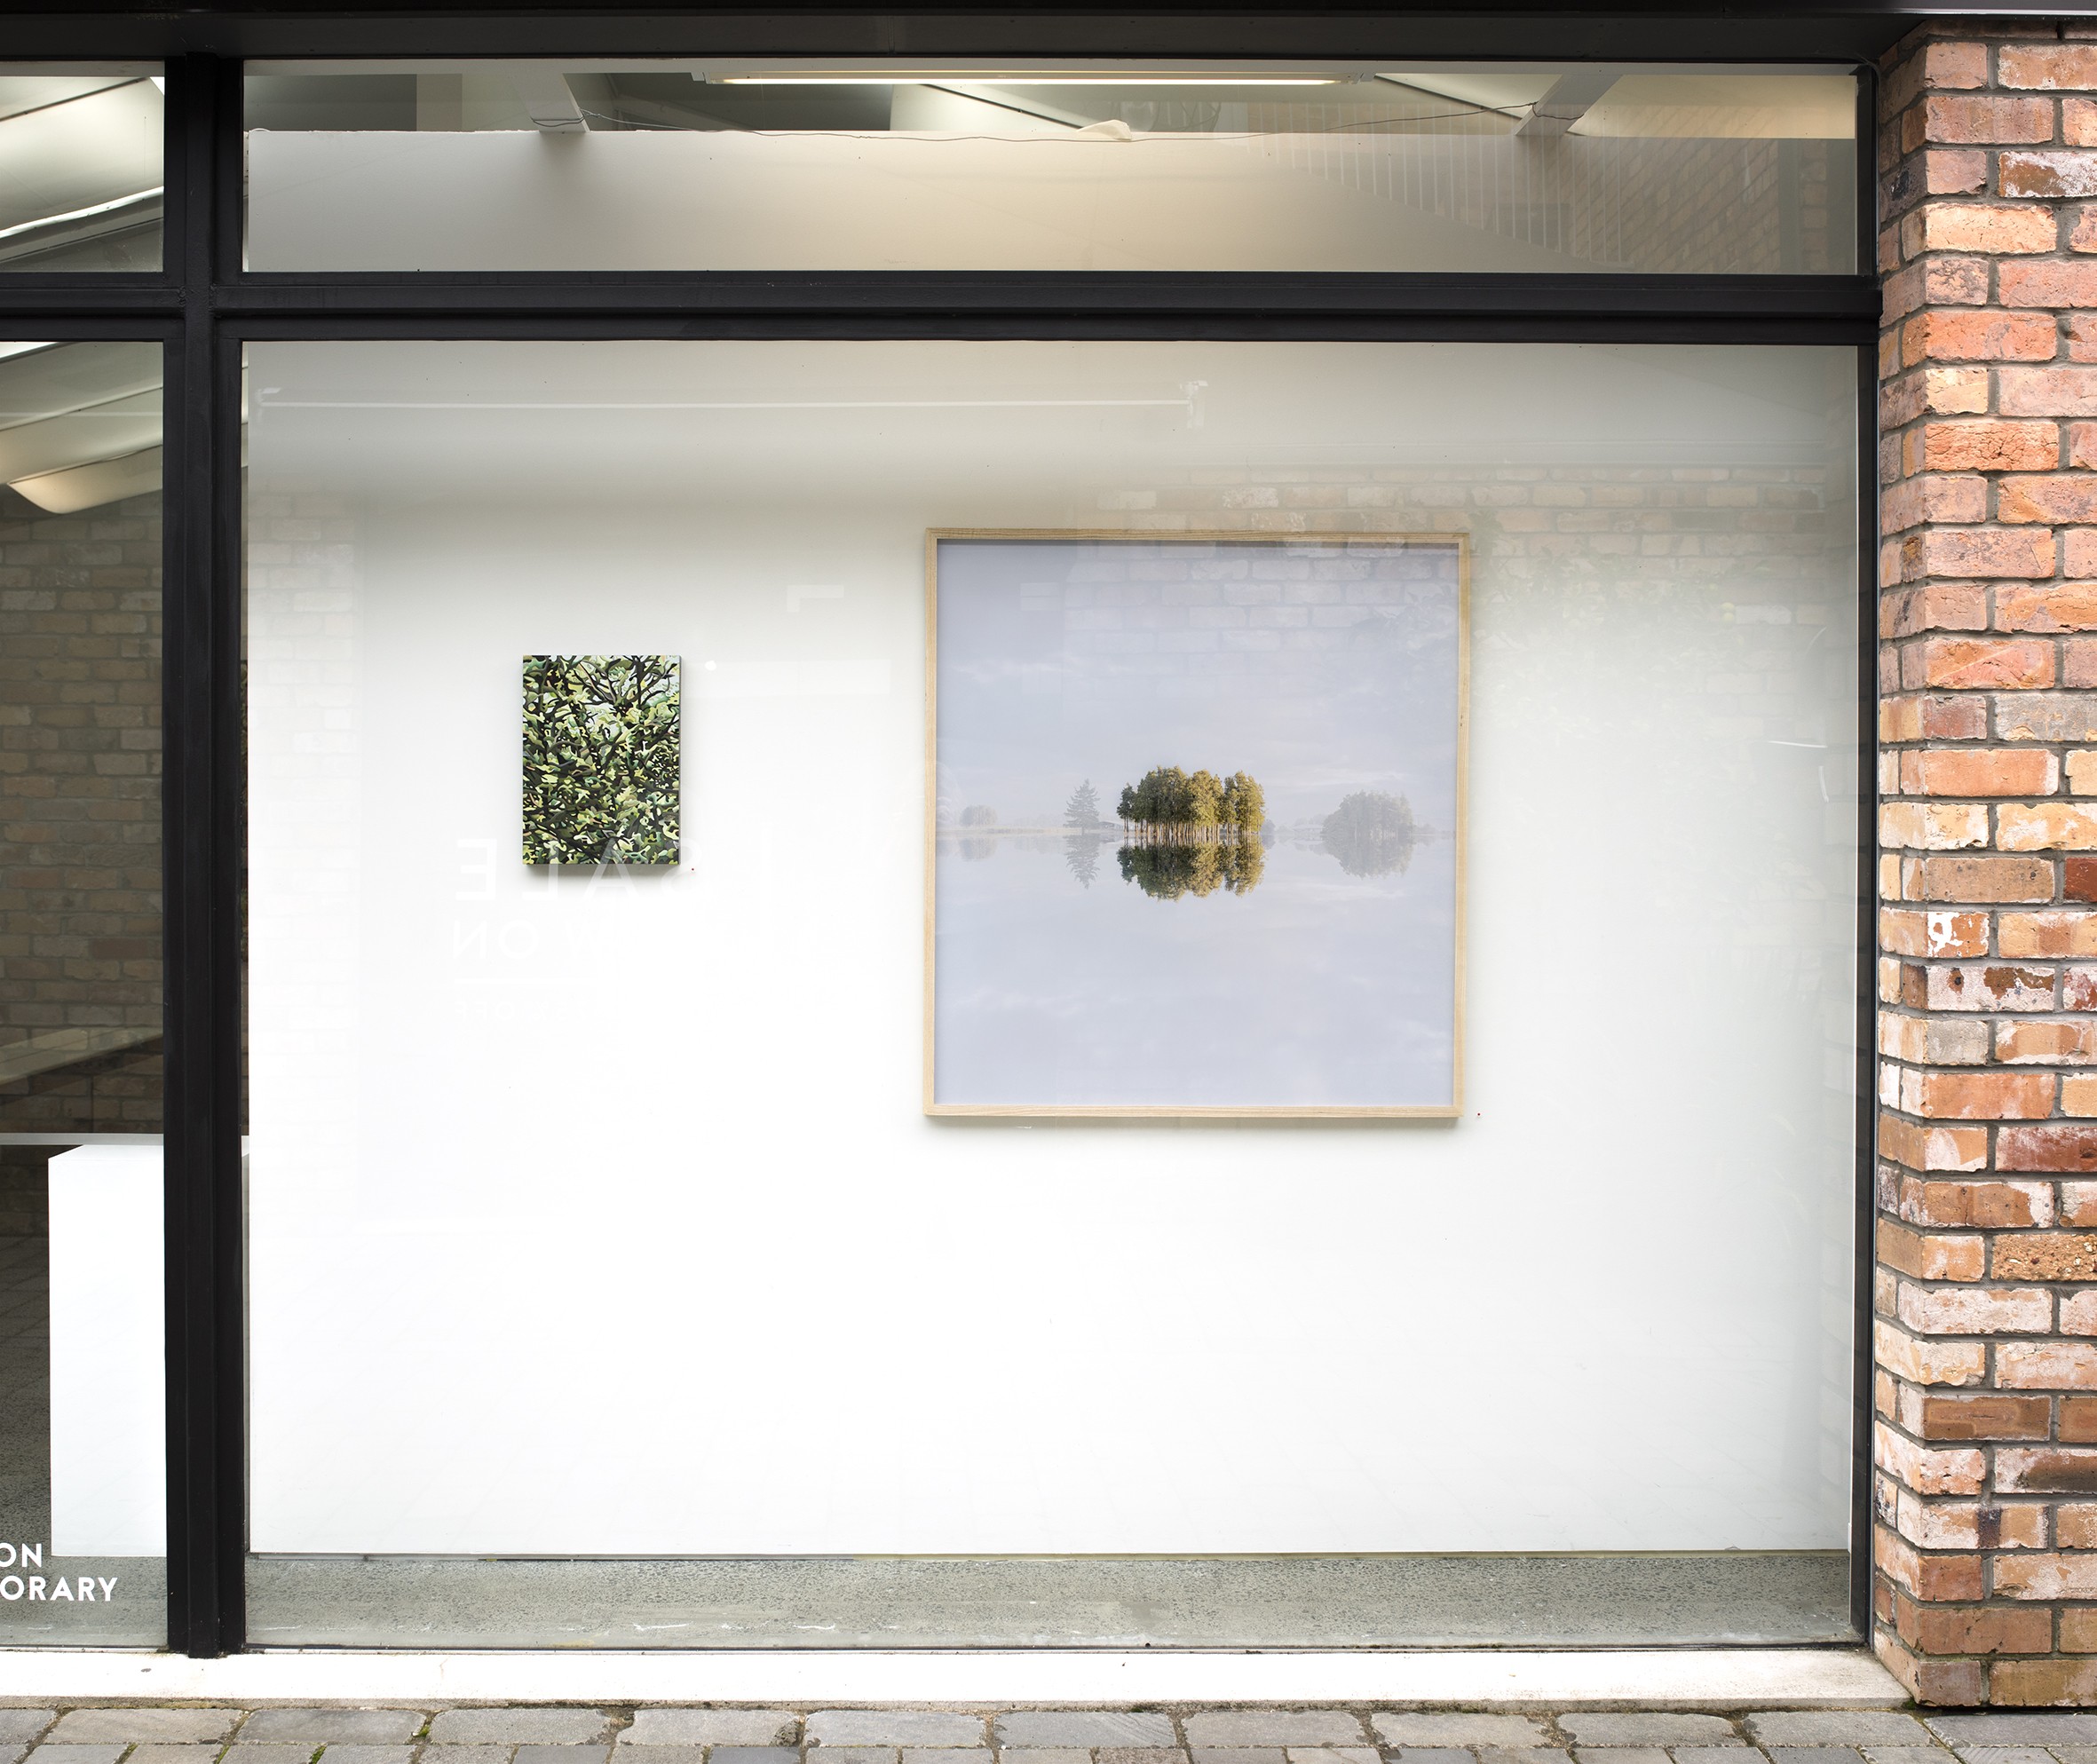 Window space Sanderson Contemporary  Left:  All Flourishing is Mutual  by Paris Kirby. Right  Awaiti, Waihou Valley